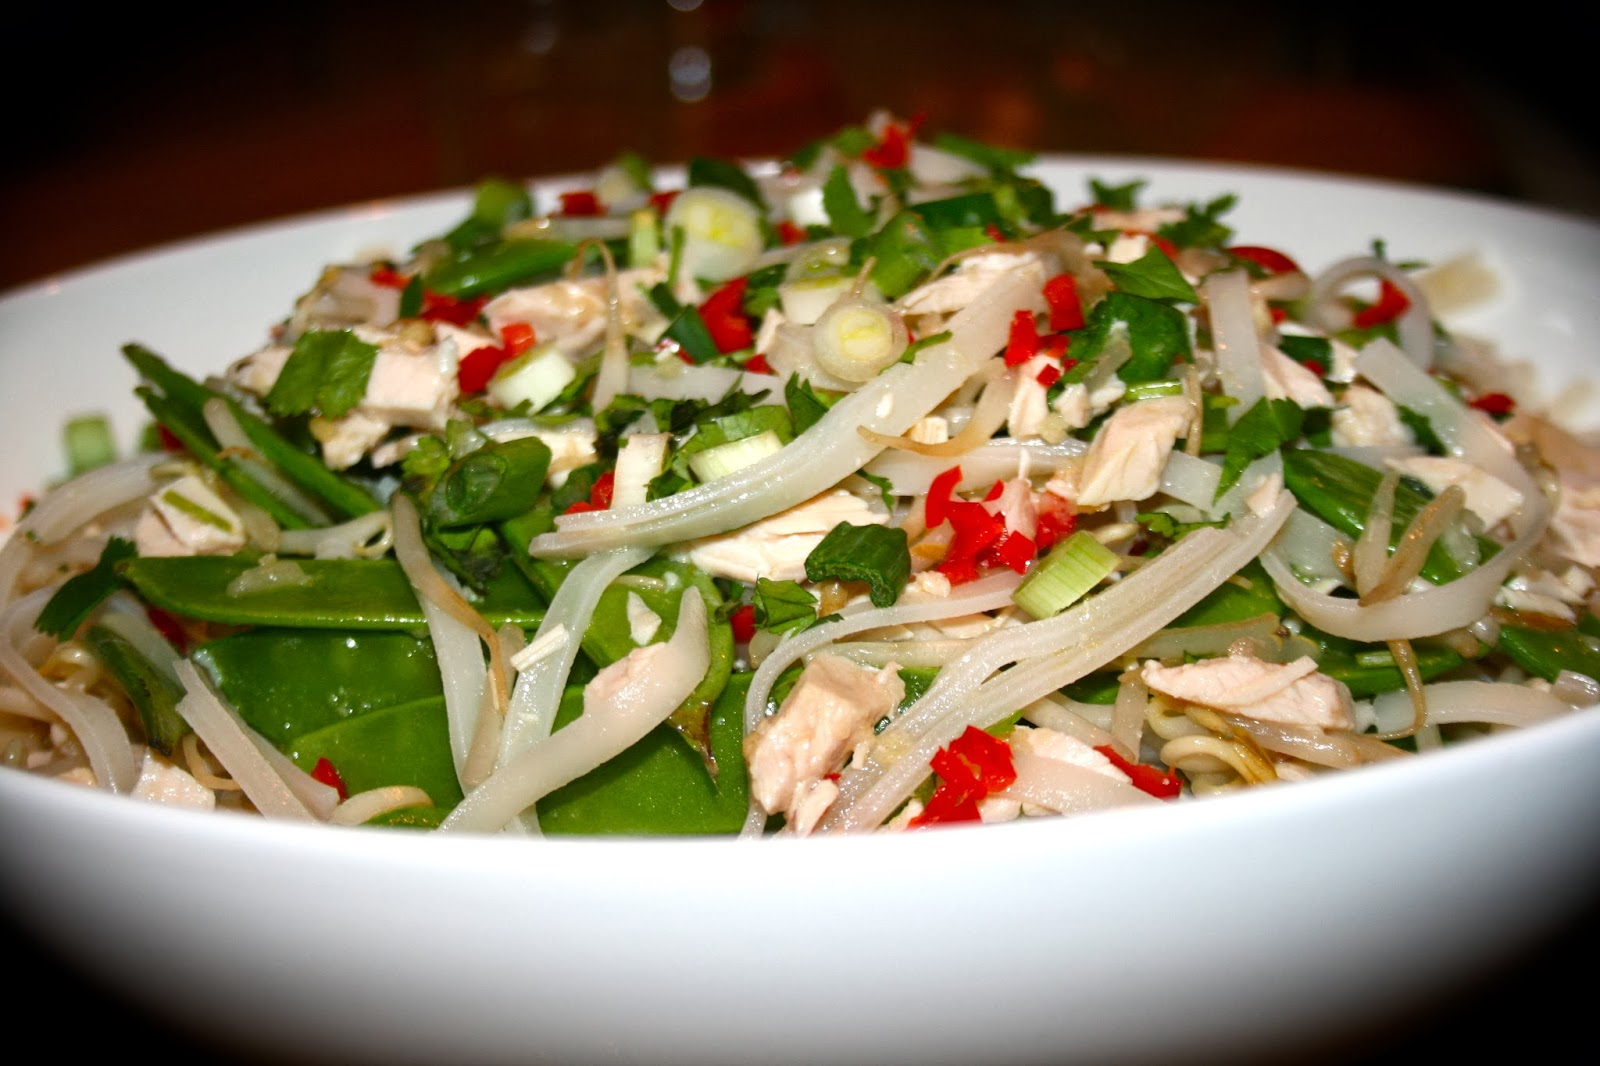 Not Just A Pretty Plate: Vietnamese Turkey & Rice Noodle Salad